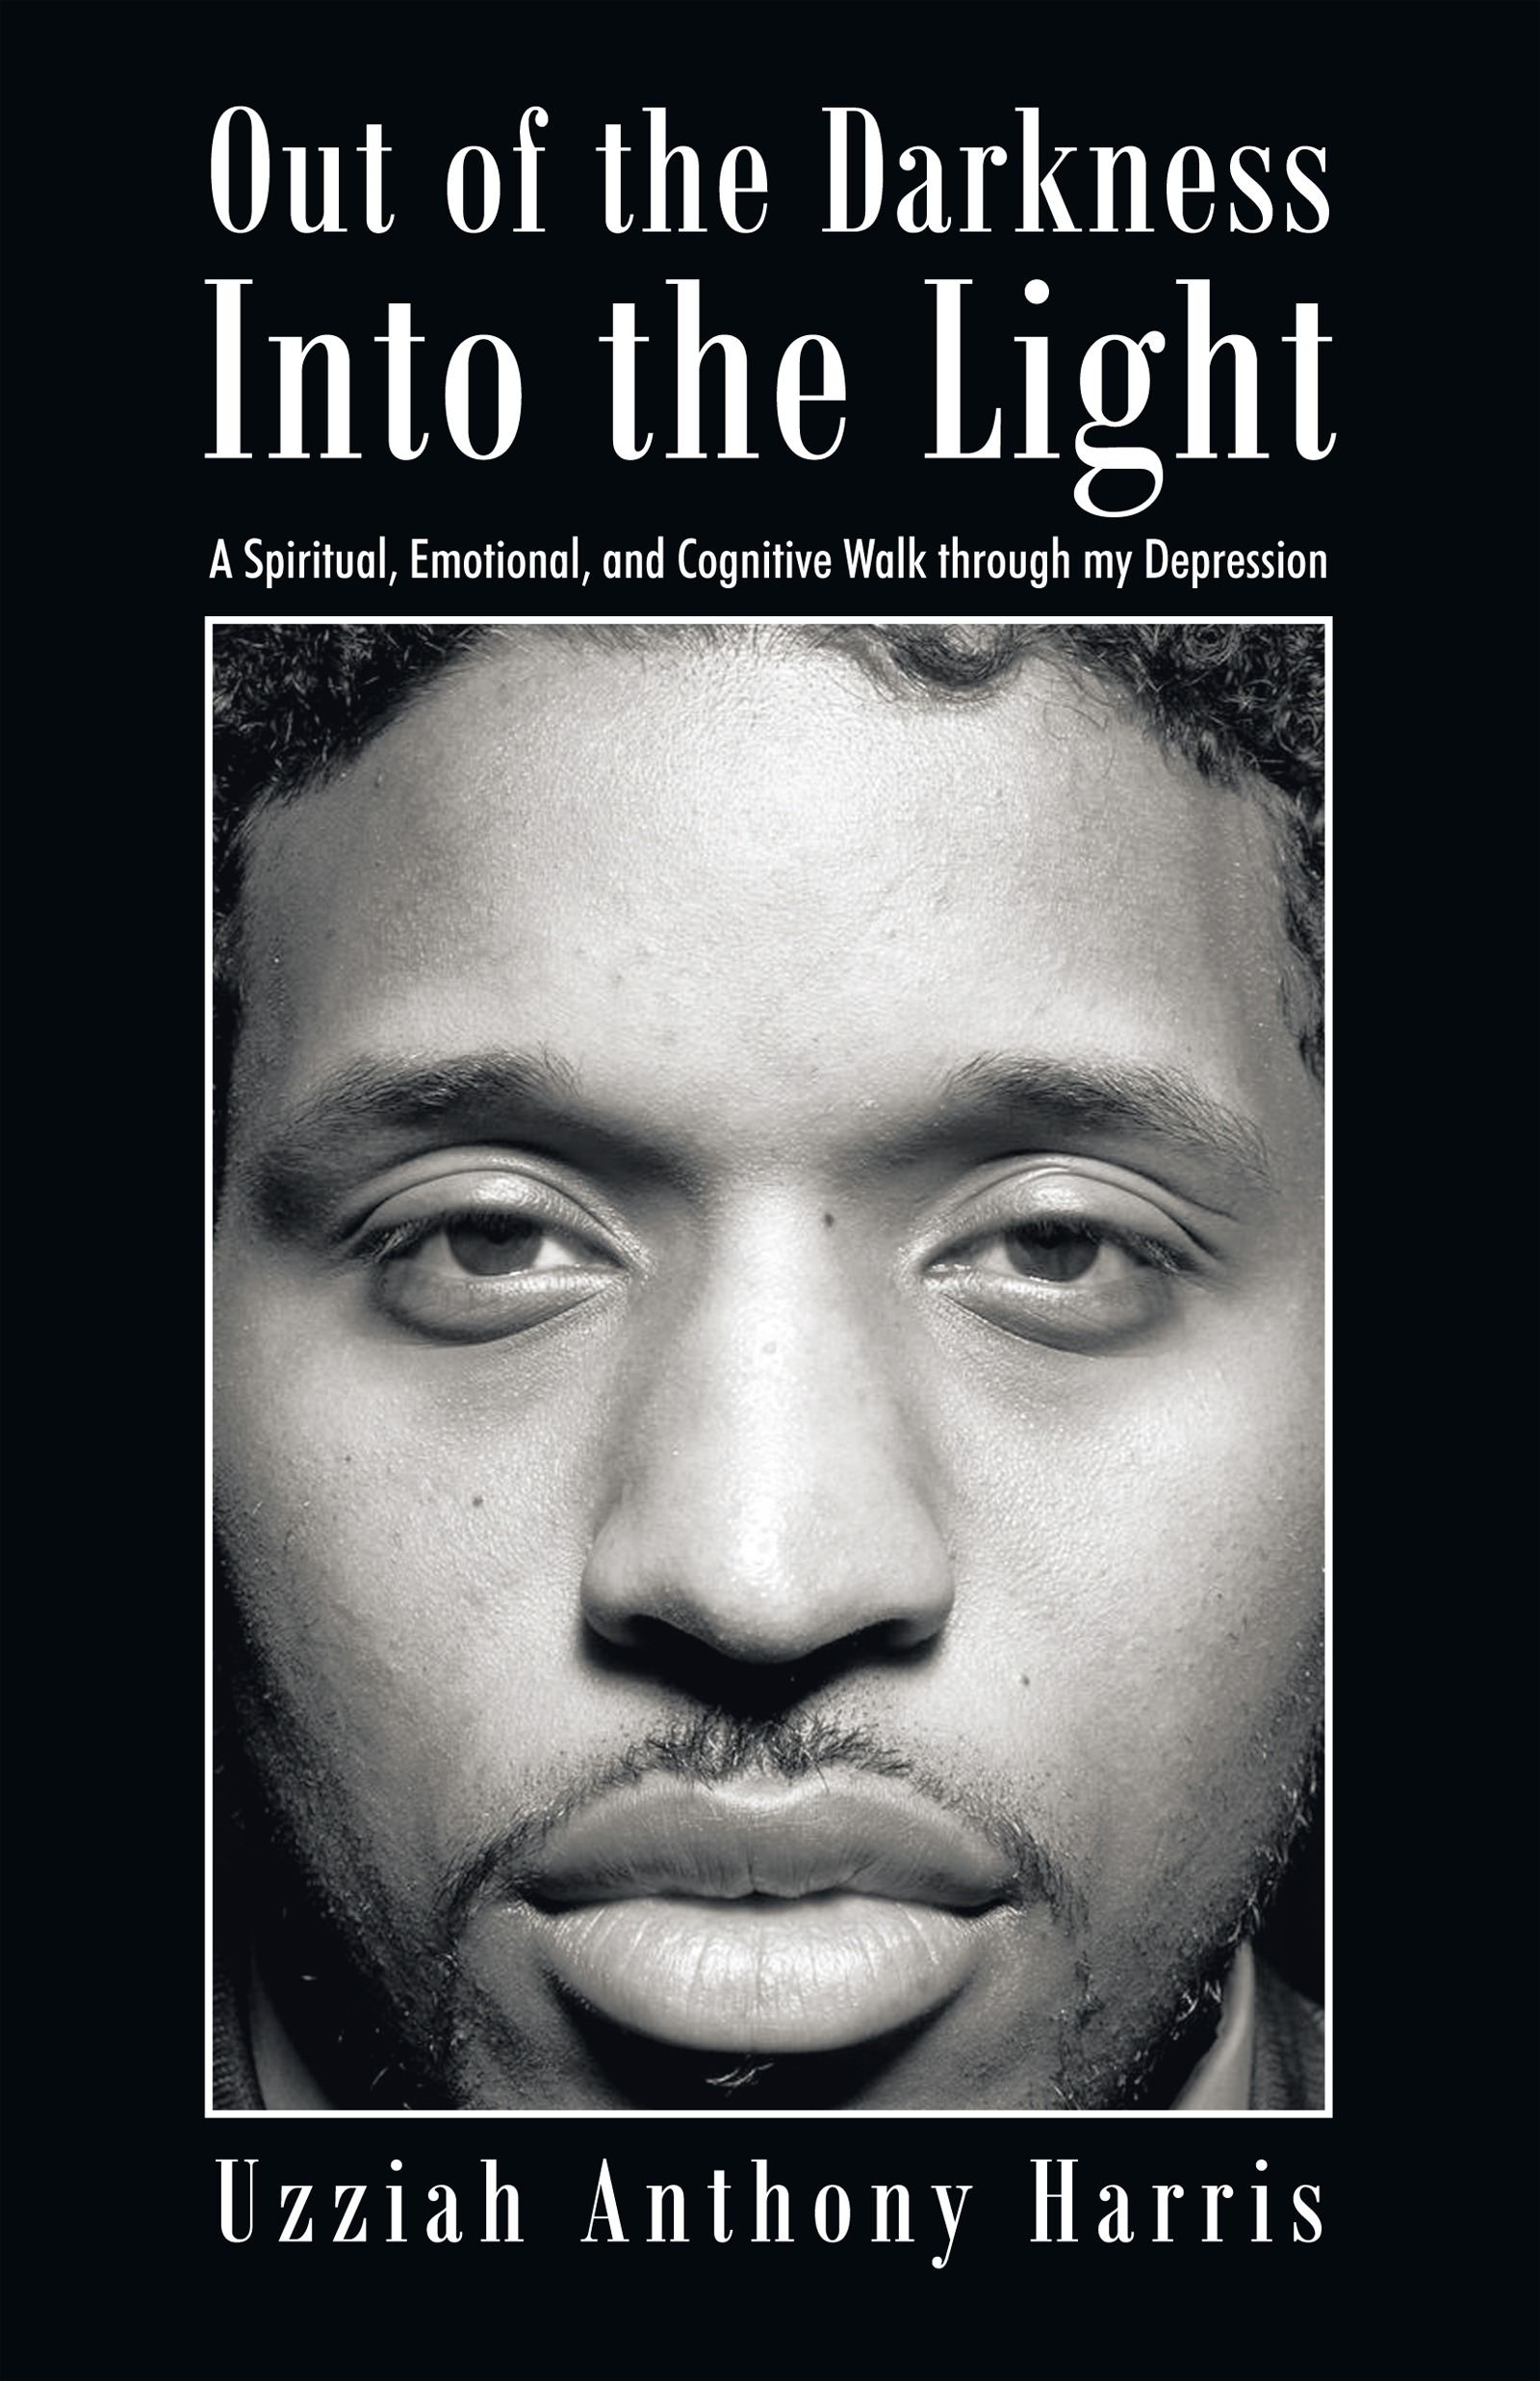 Out of the Darkness Into the Light By: Uzziah Anthony Harris